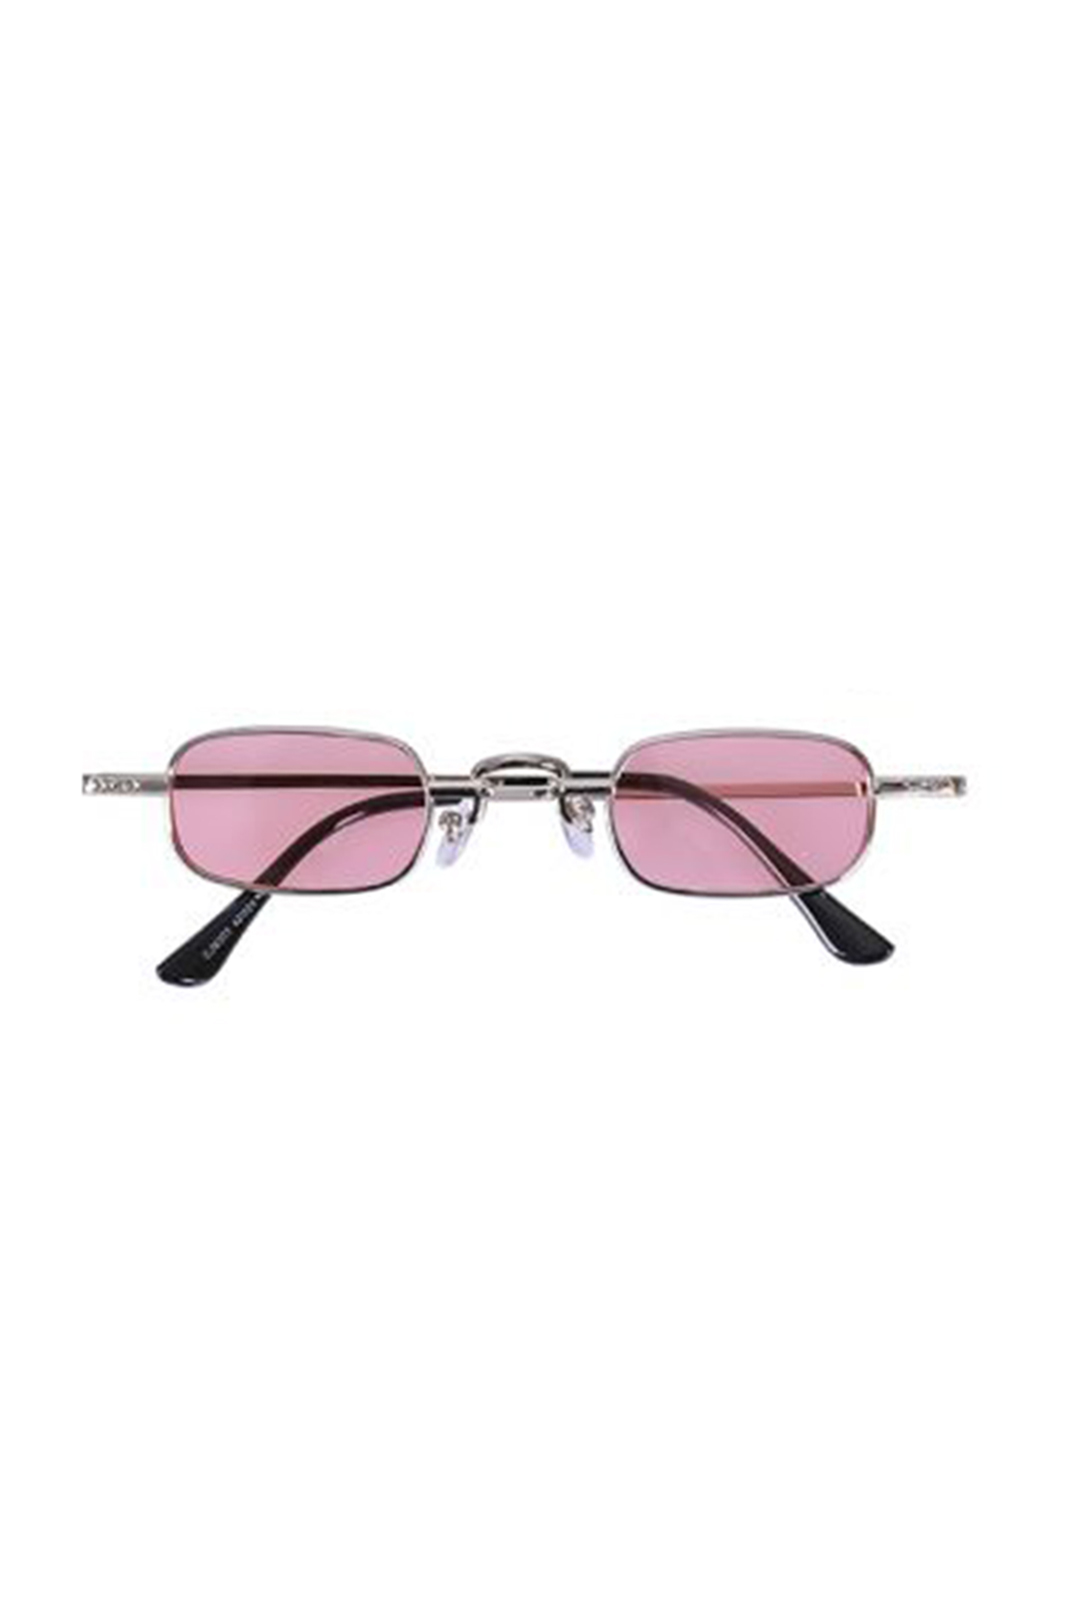 Sunglasses Square Pink